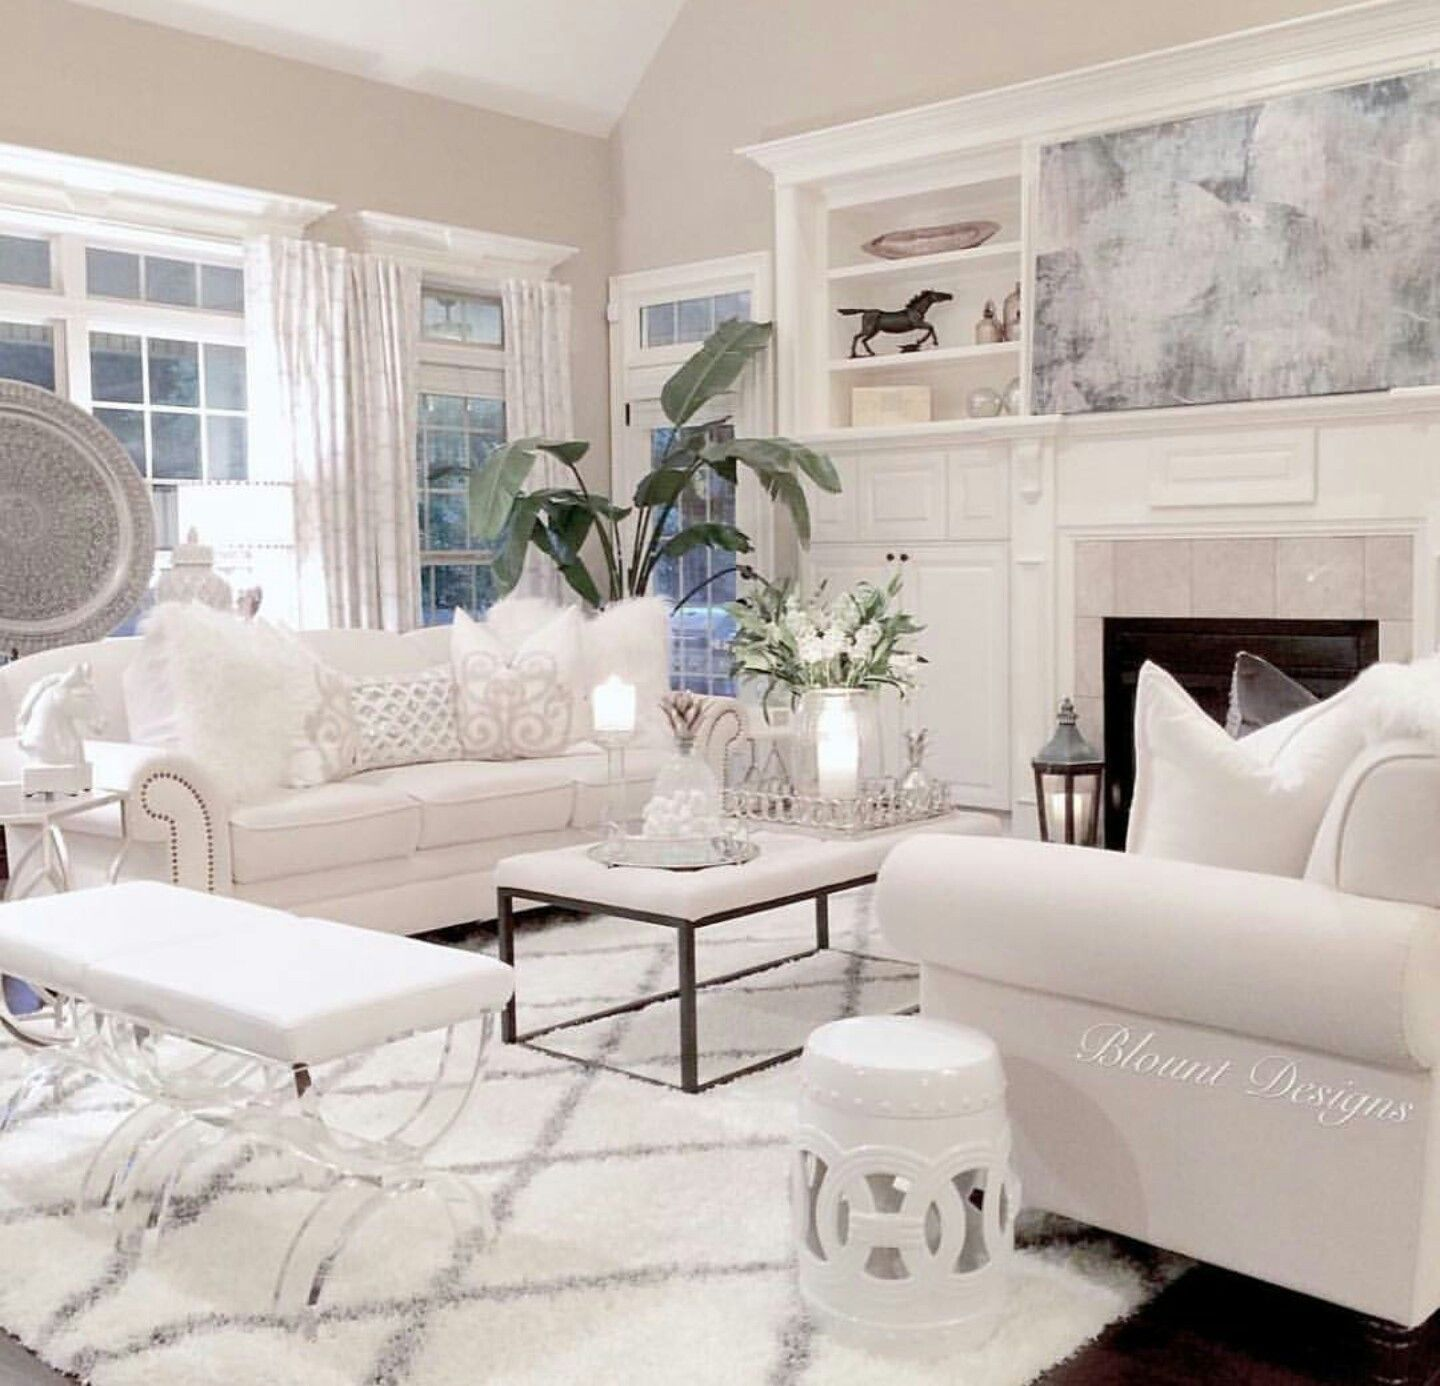 Pin By Yaren Akcaalan On First Place Ideas White Furniture Living Room White Living Room Decor Living Room White